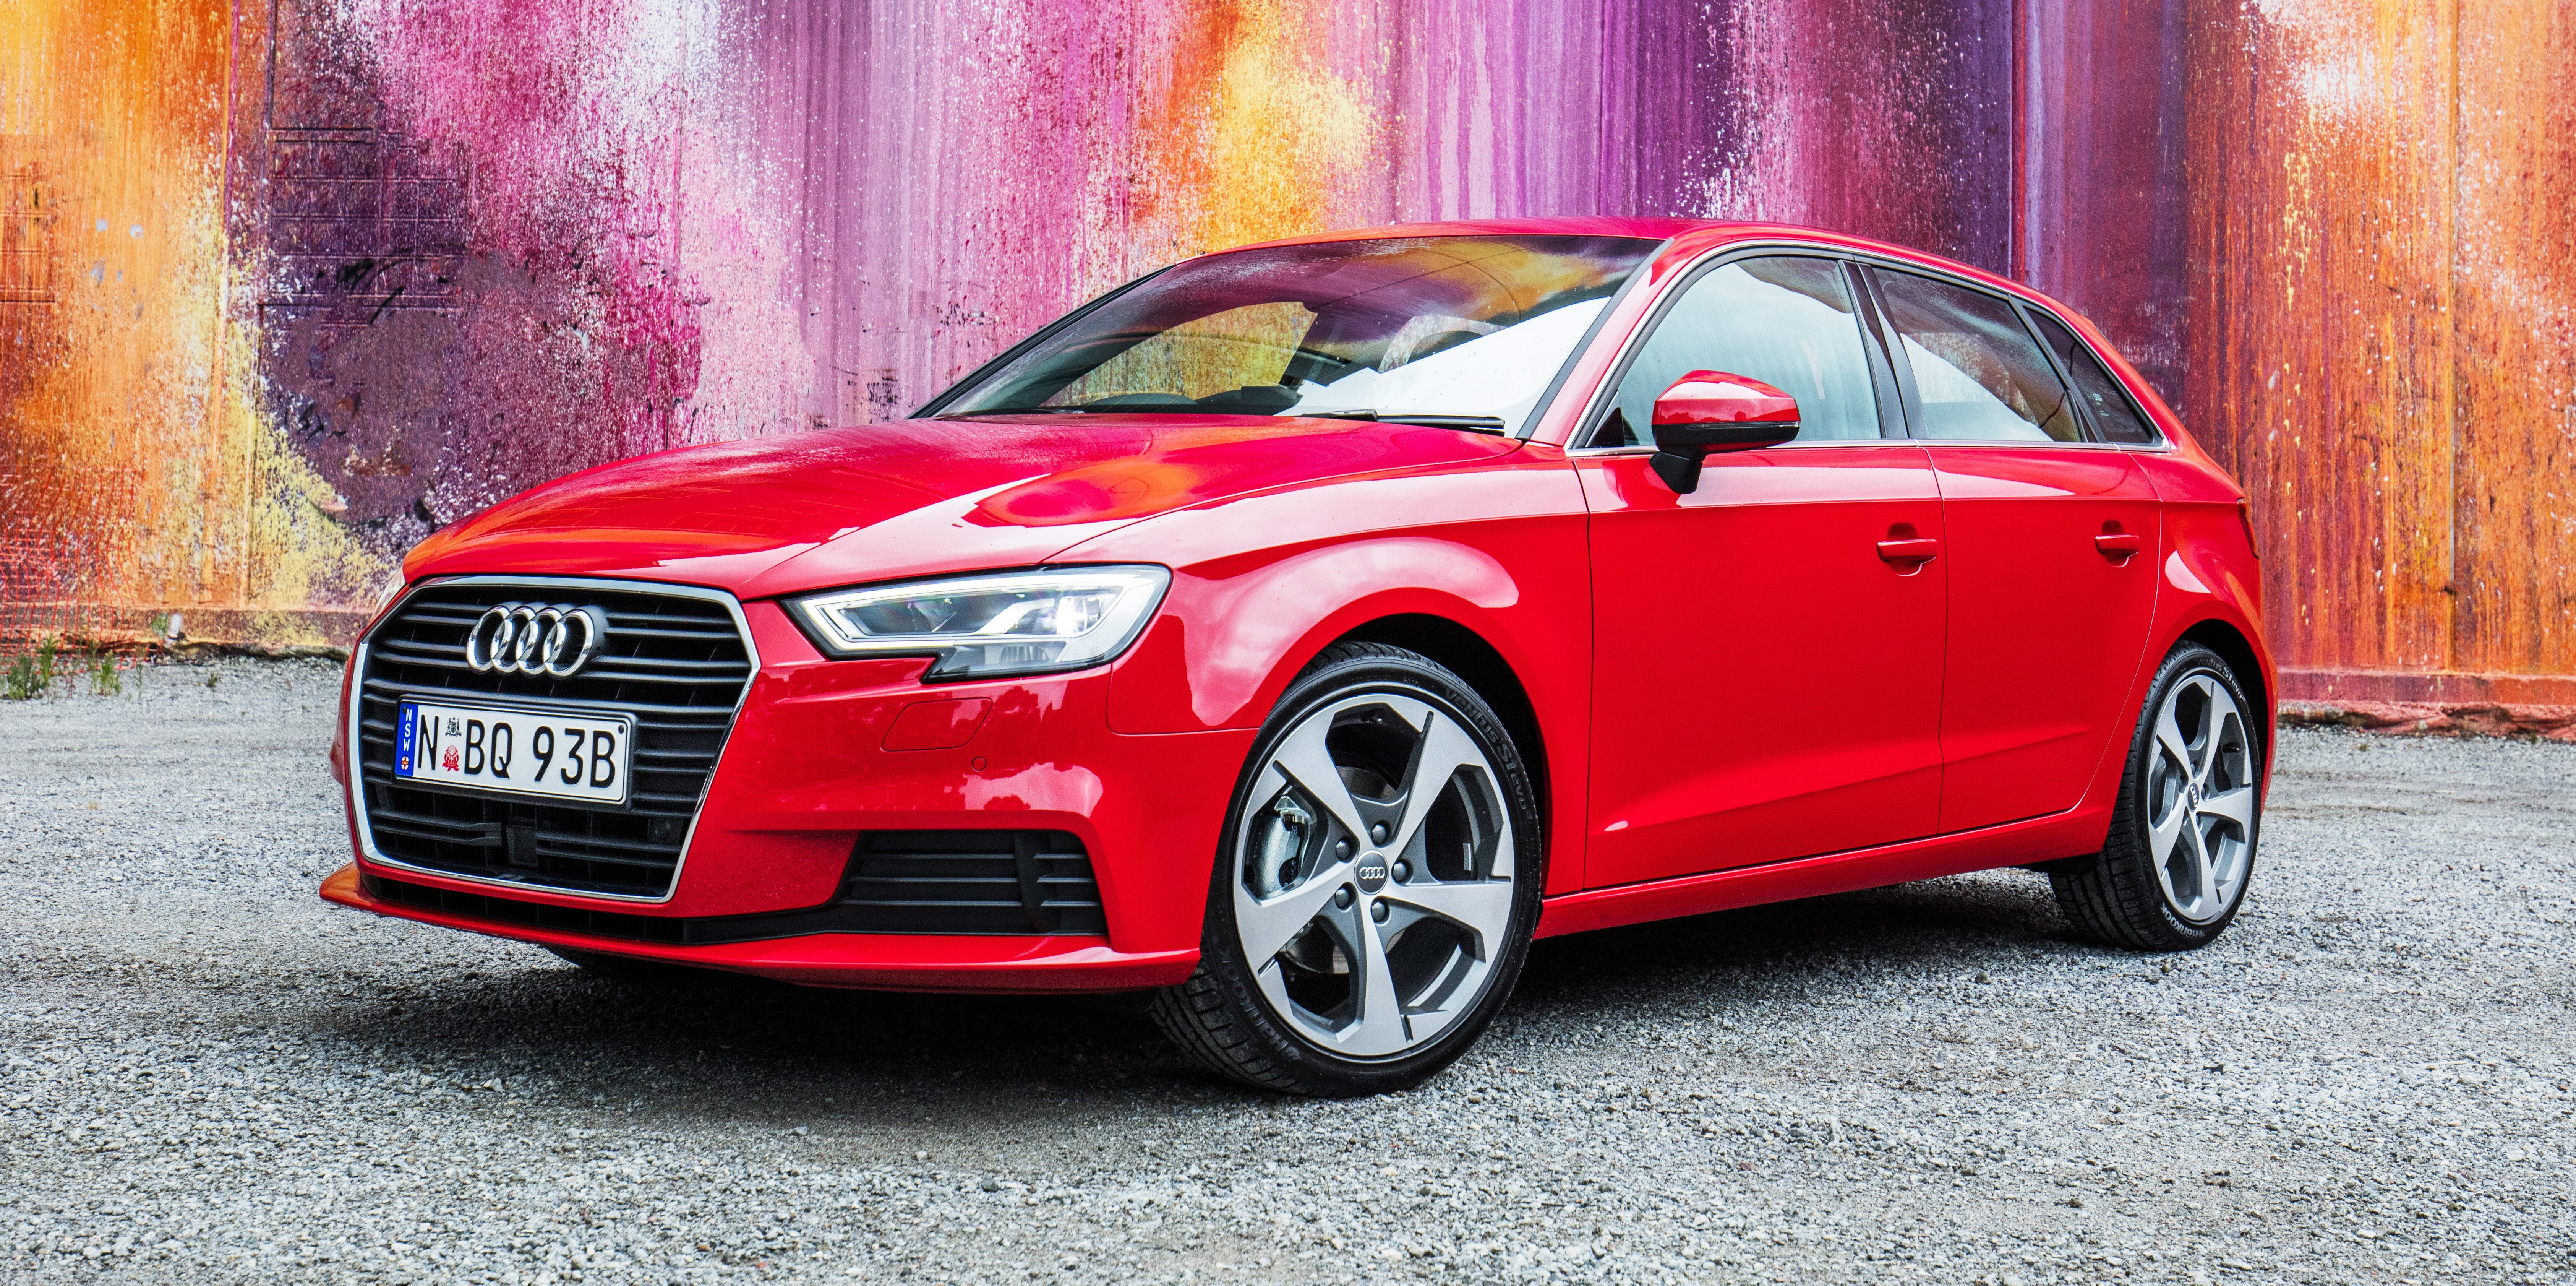 2017 Audi A3 pricing and specs - Photos (1 of 6)